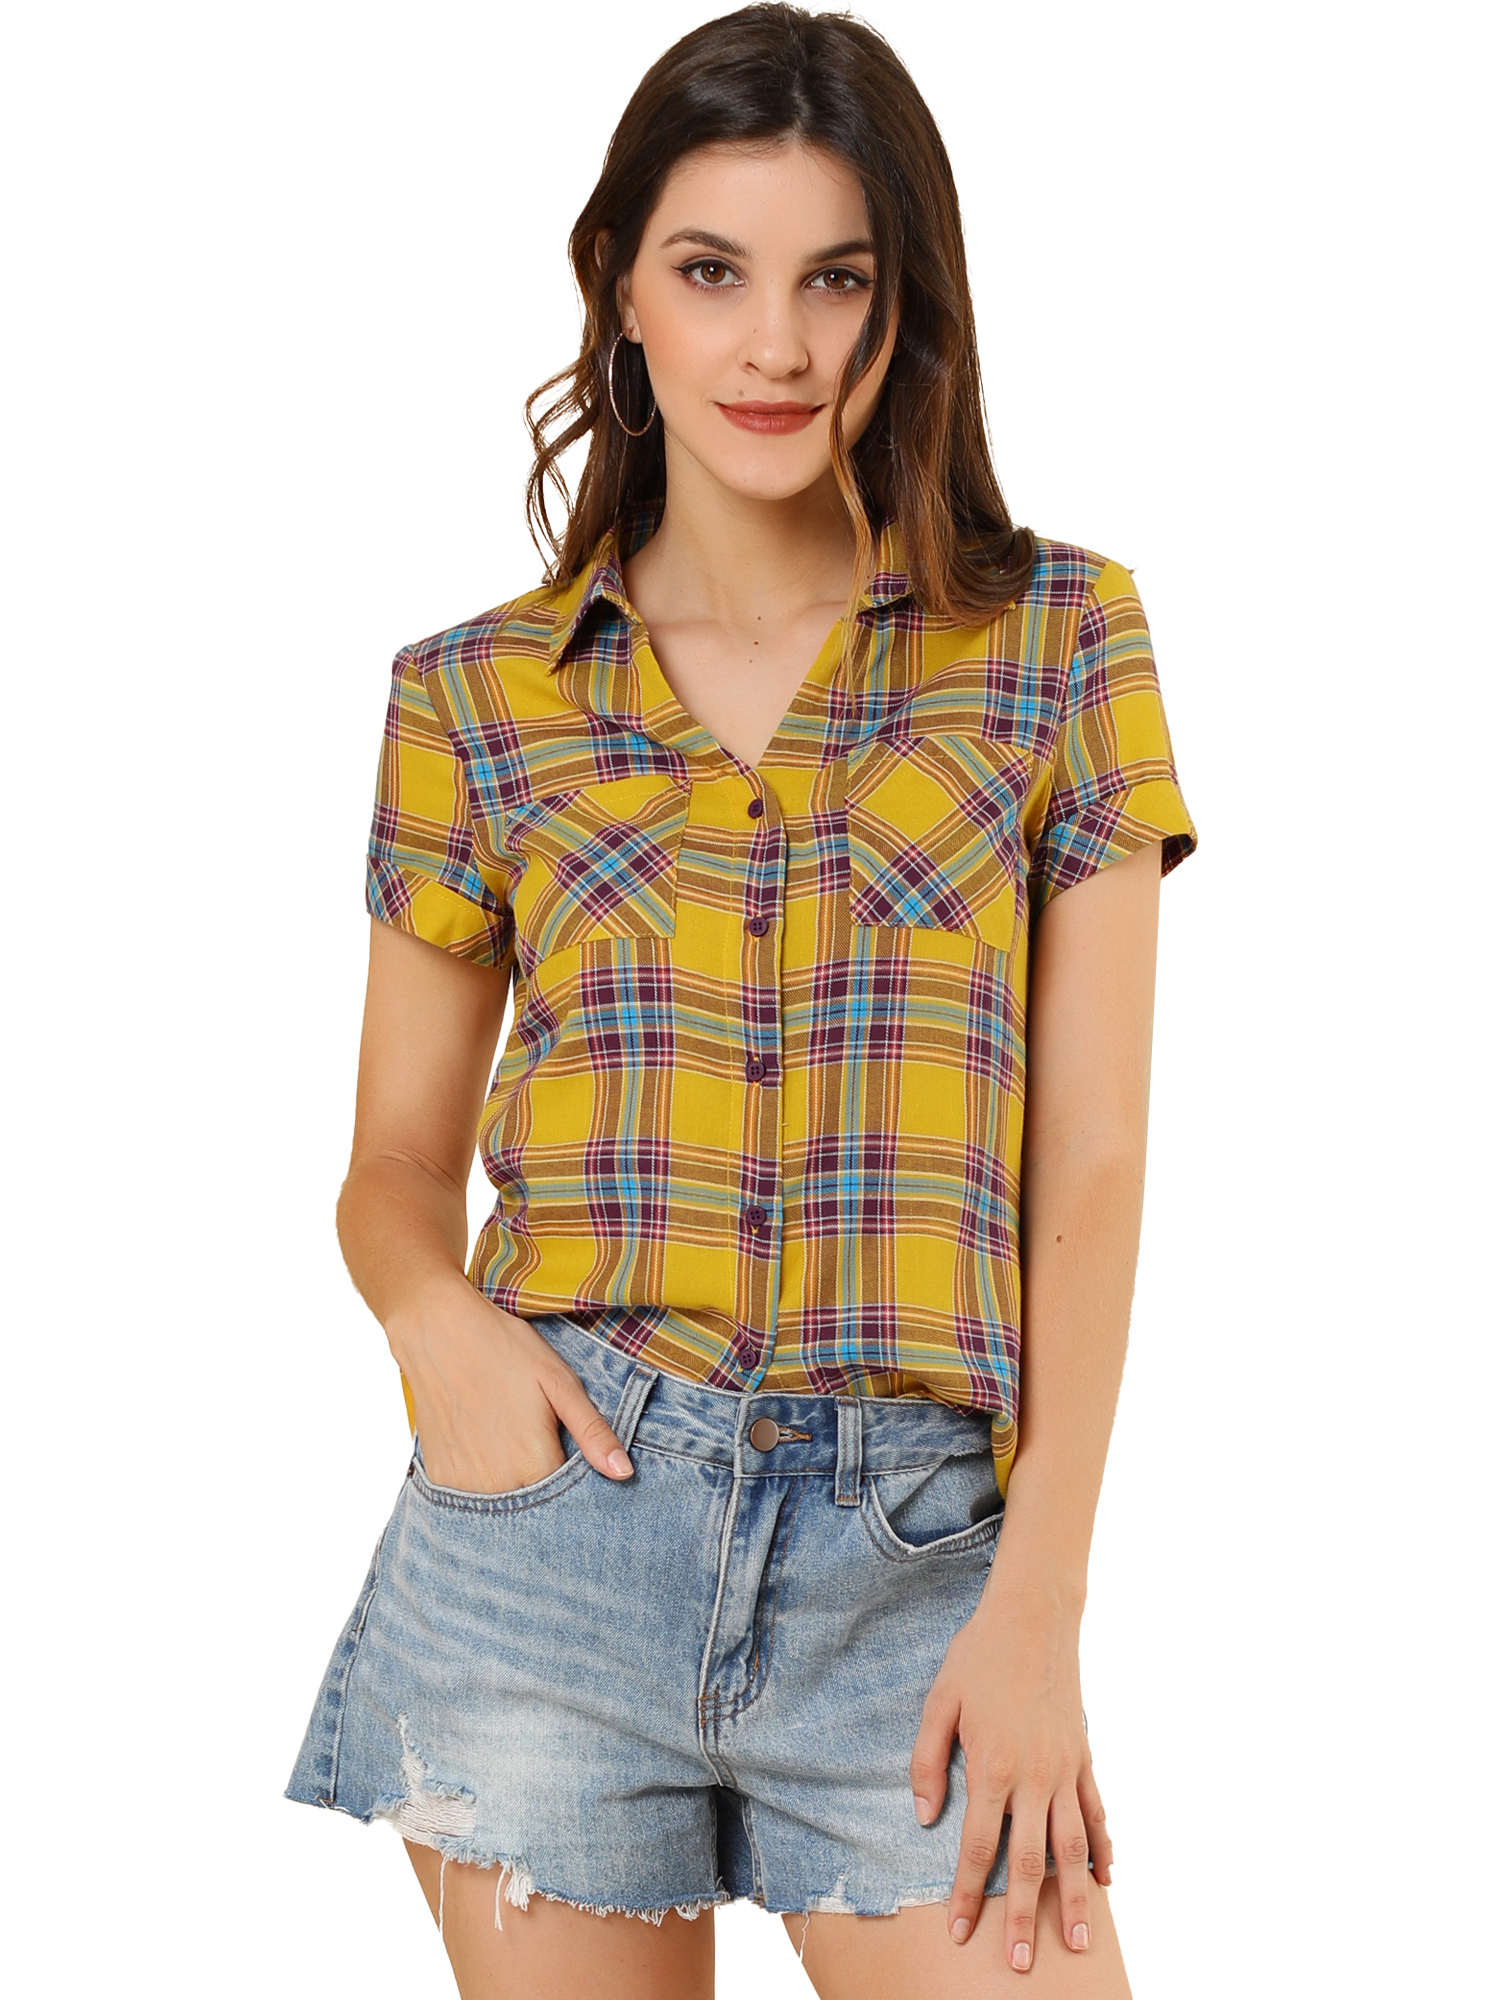 Women's Casual Boyfriend Plaid Button Down Shirt Yellow S